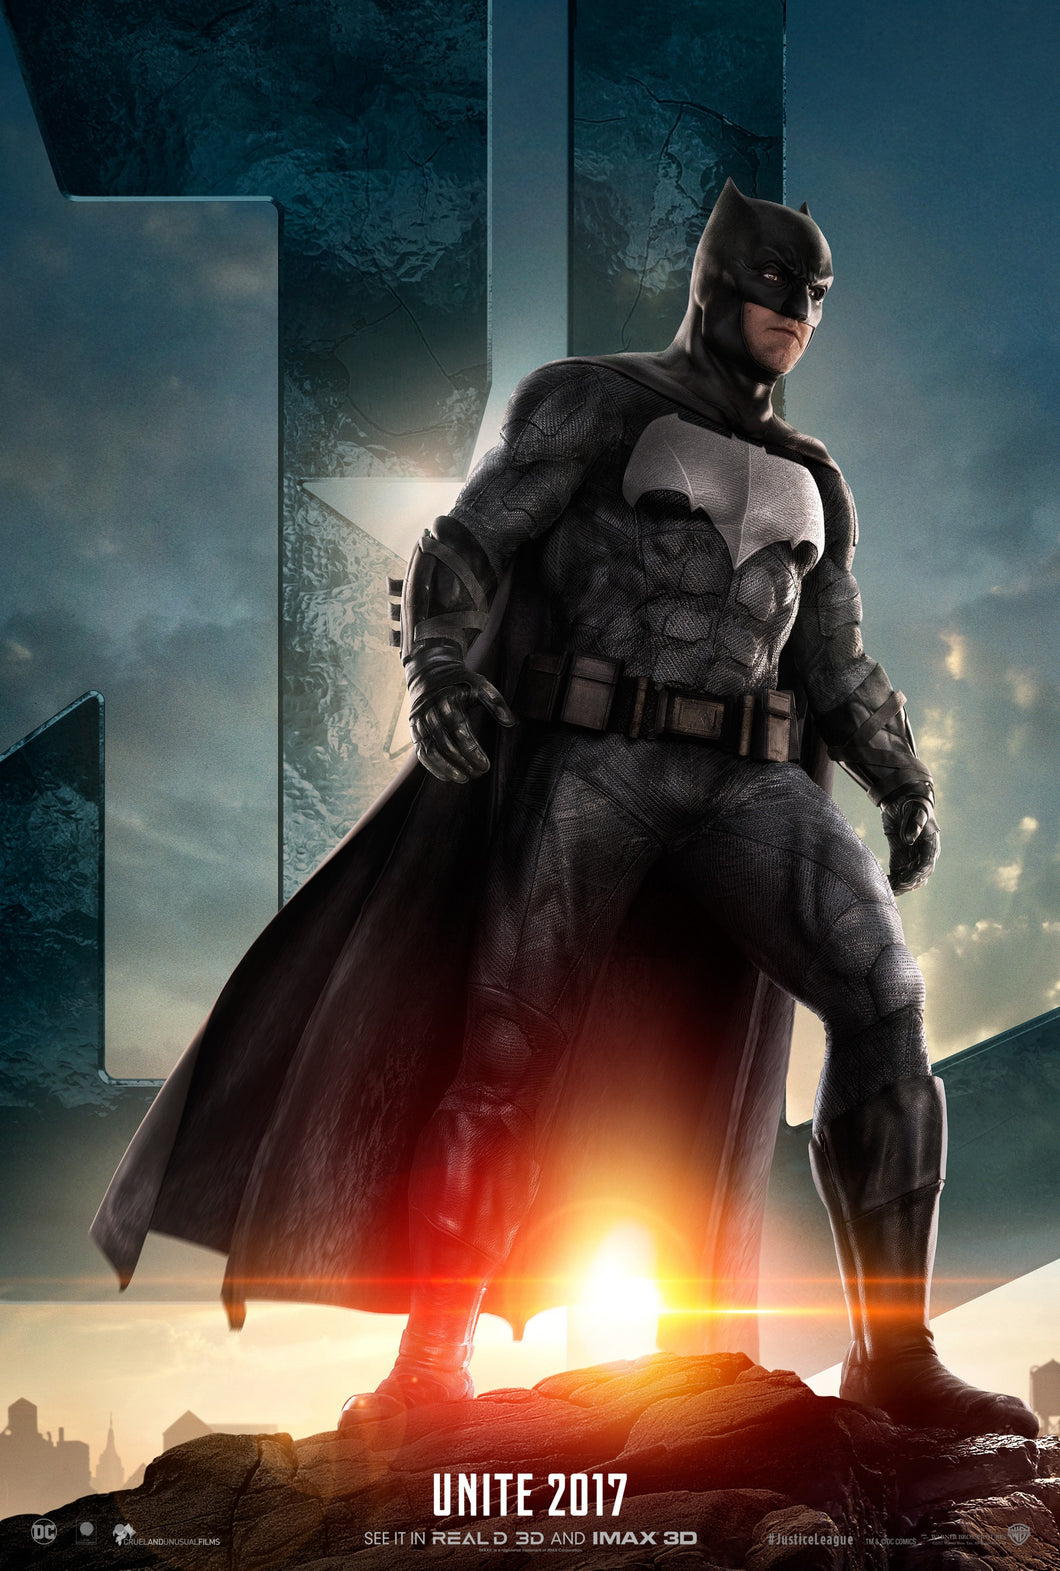 Poster Pelicula Justice League 2